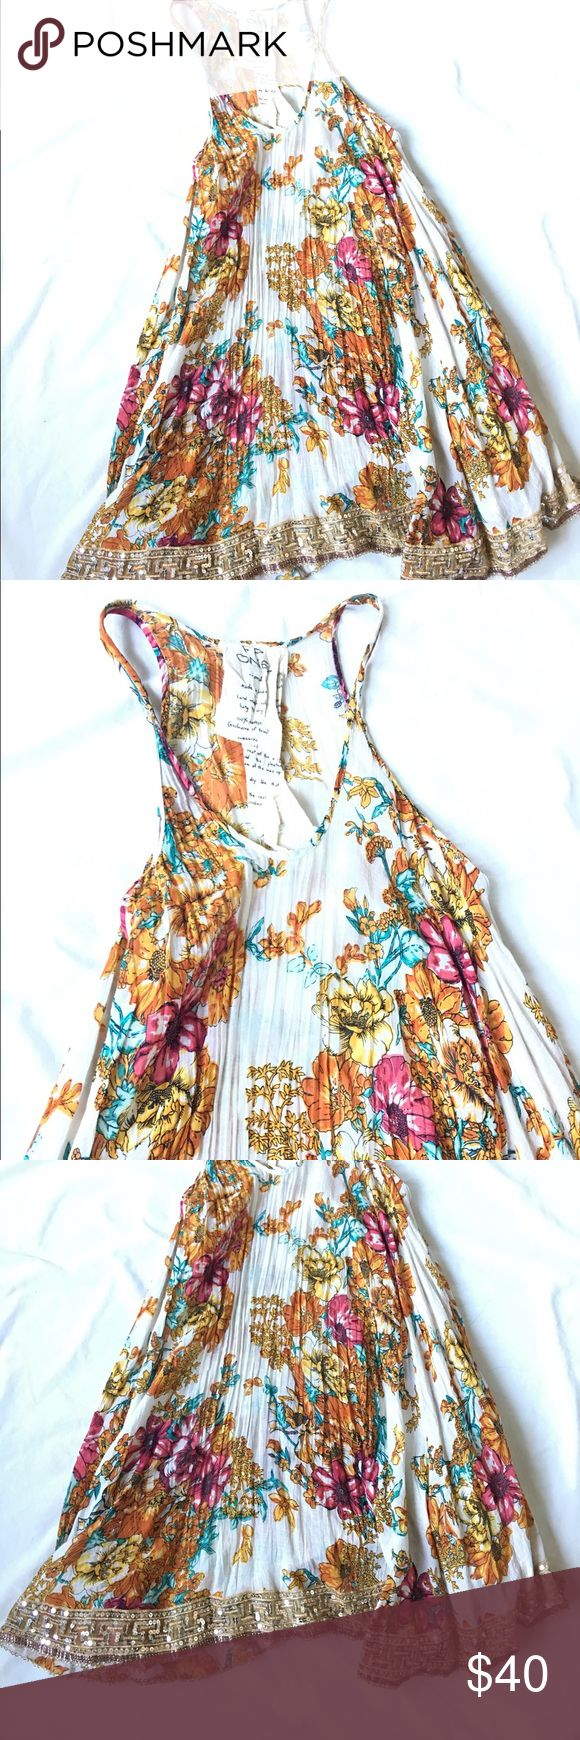 🎀Free people floral  Sequins Dress 🎀 🎀Free people floral  Sequins Dress 🎀 preloved in excellent condition | worn once | no stains | beautiful and flowy dress Free People Dresses Midi